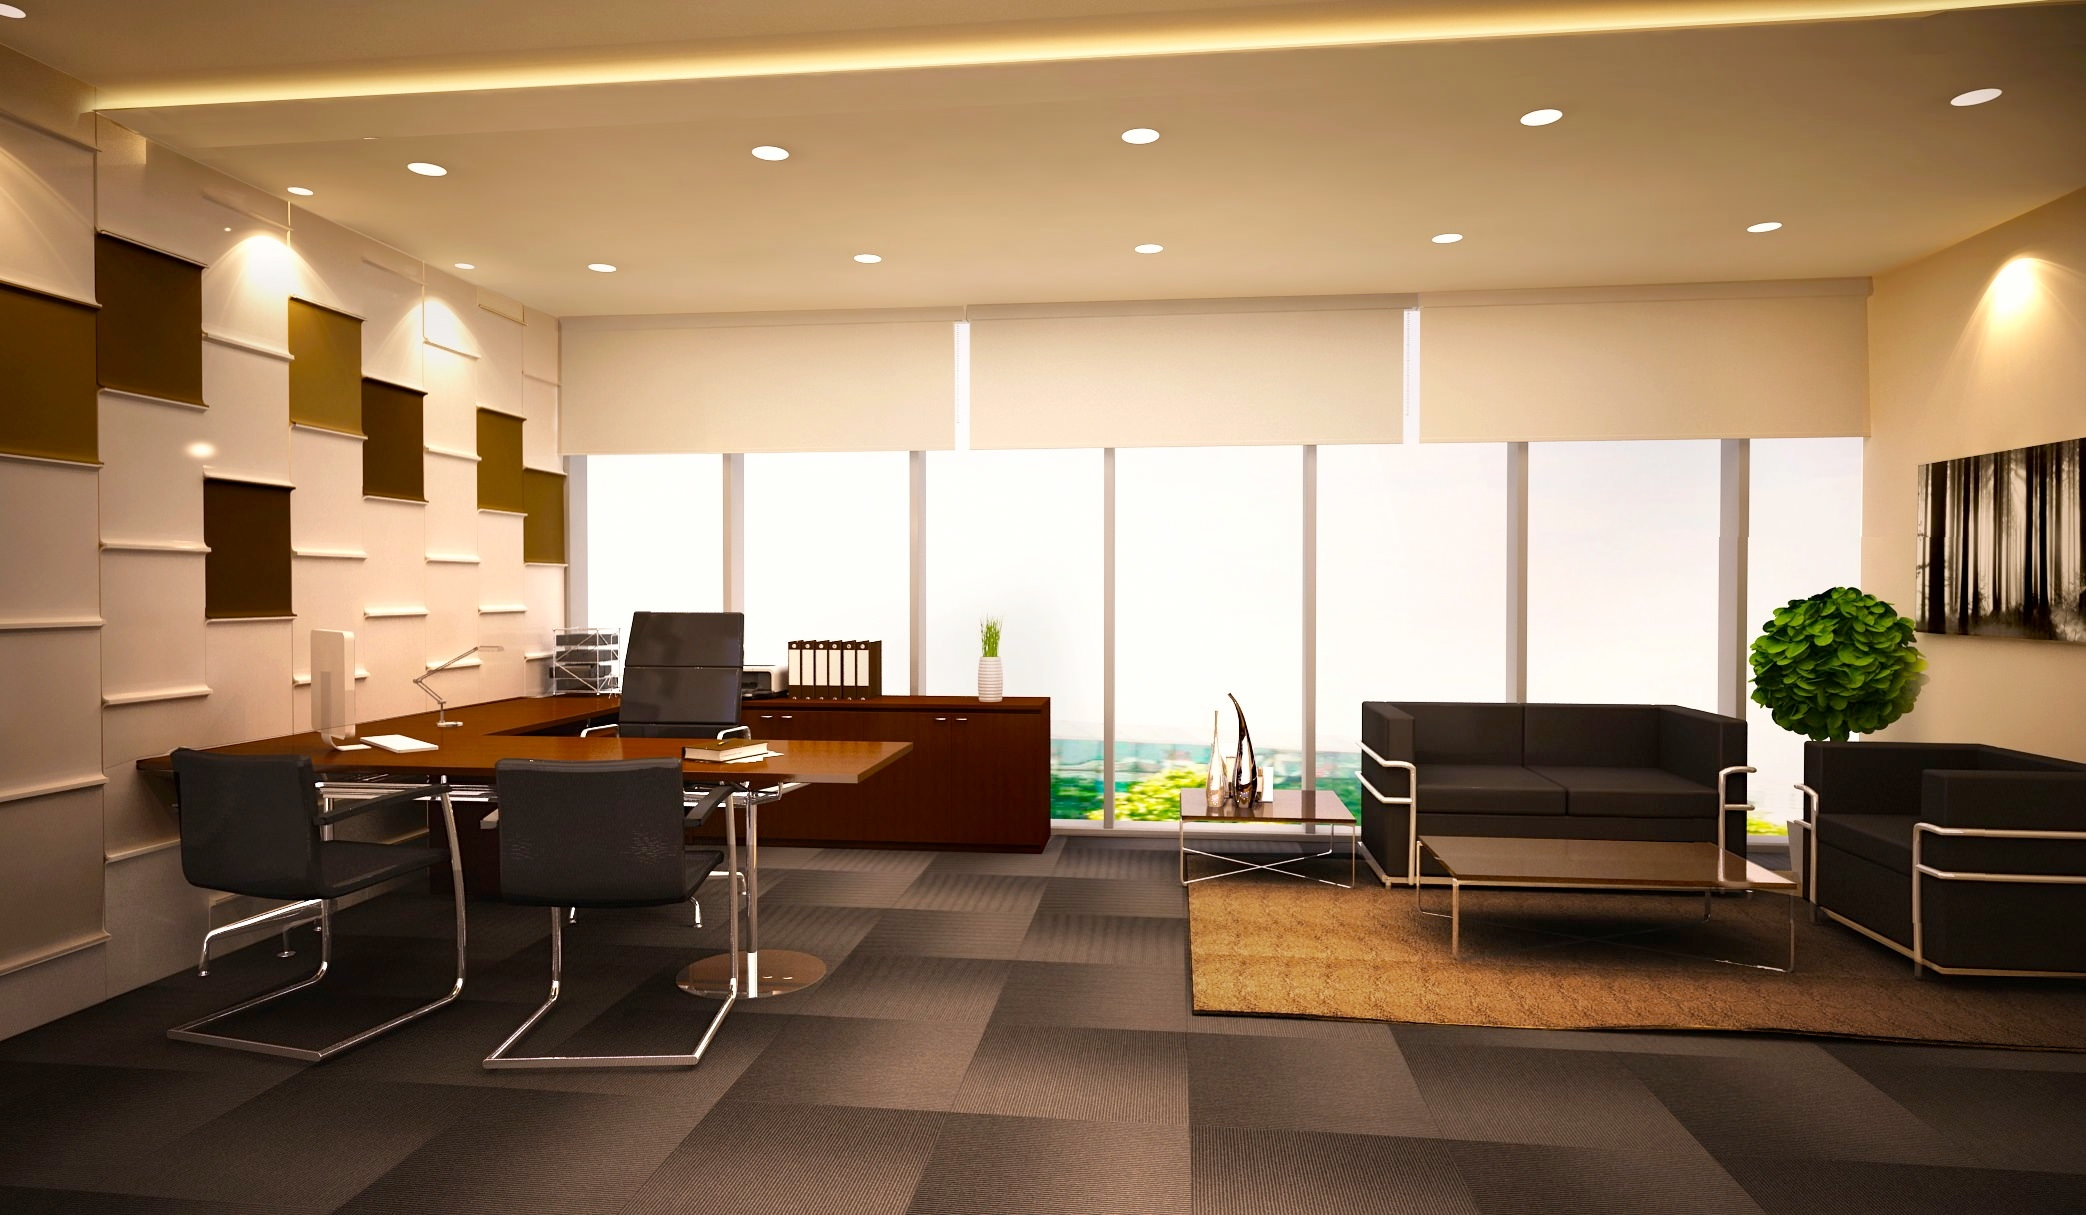 minimalist office space design - Office Space Design Ideas